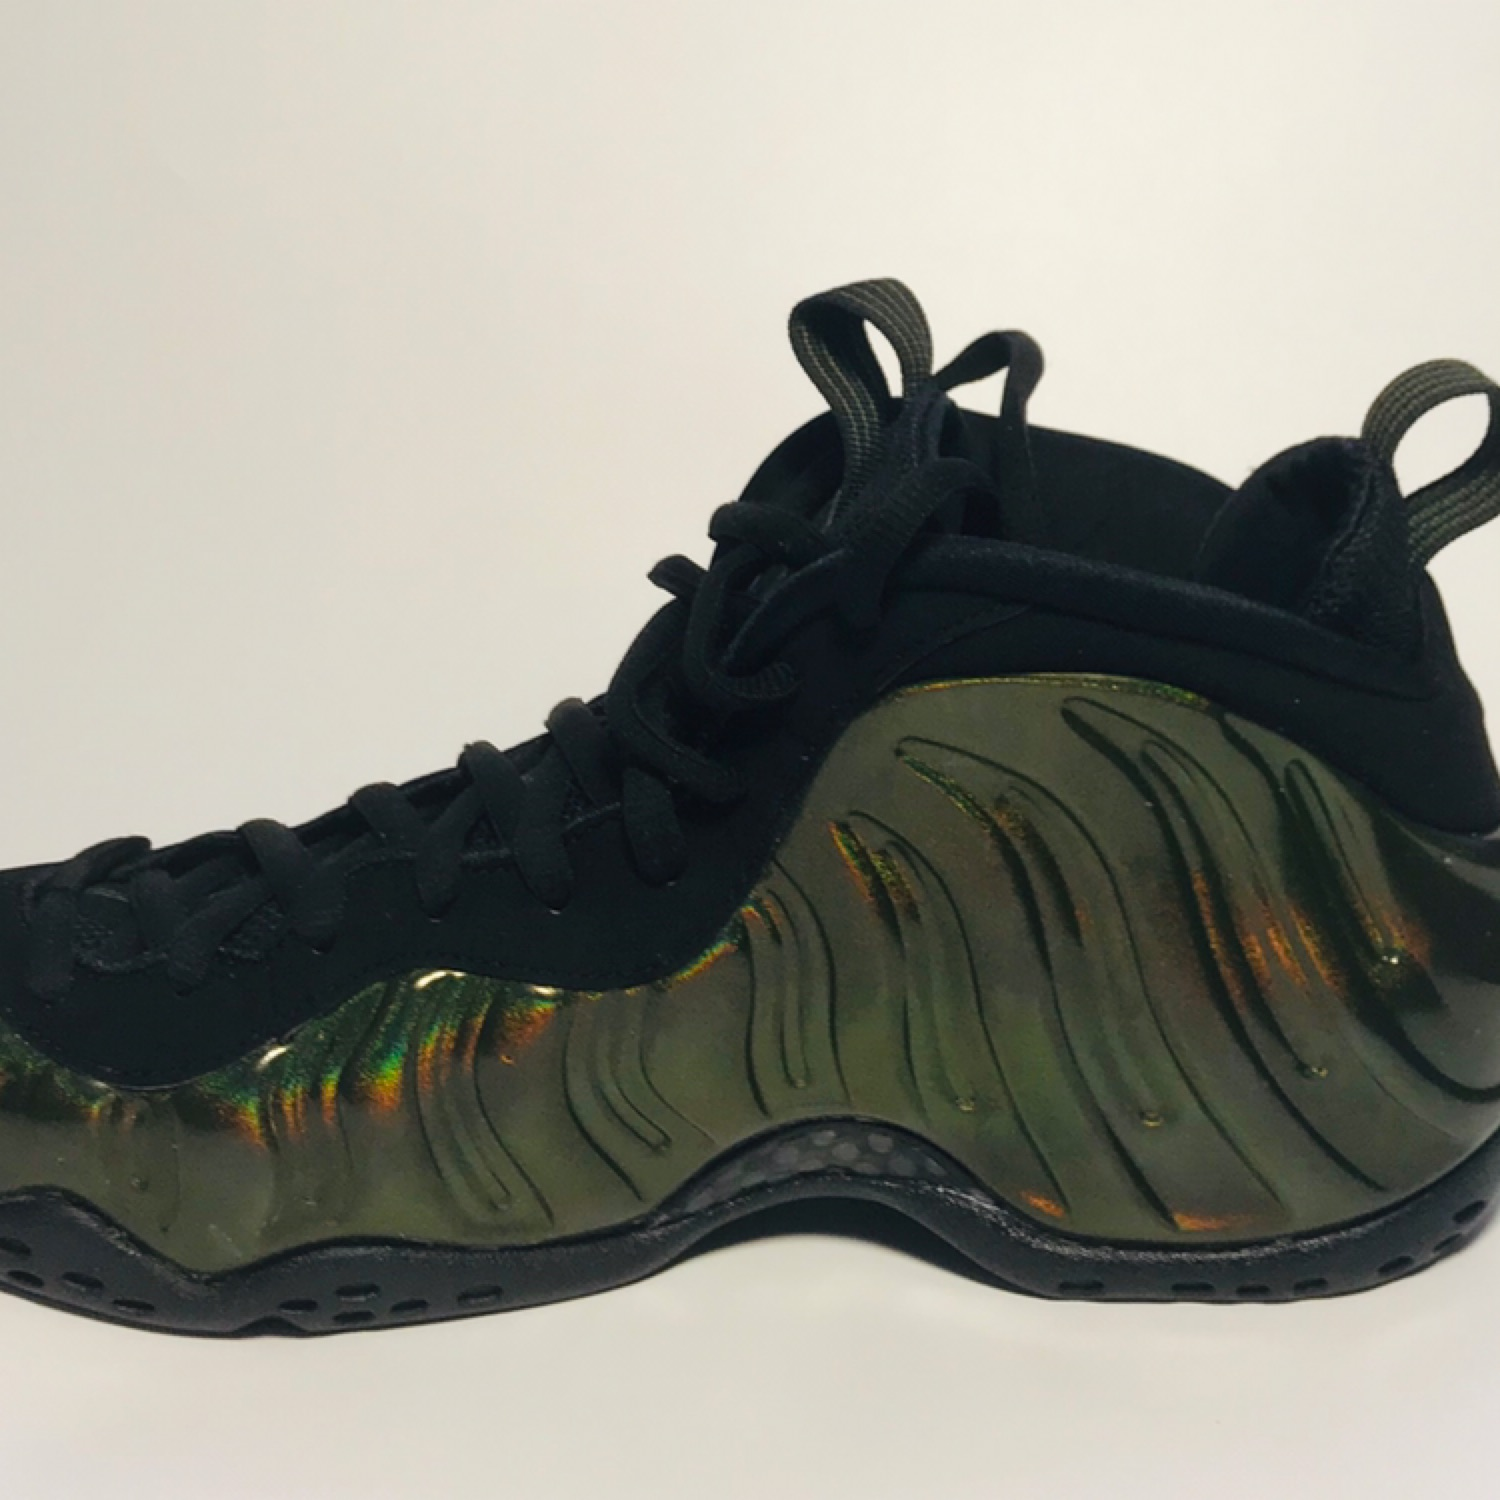 Nike Air Foamposite One Legion GreenBlack